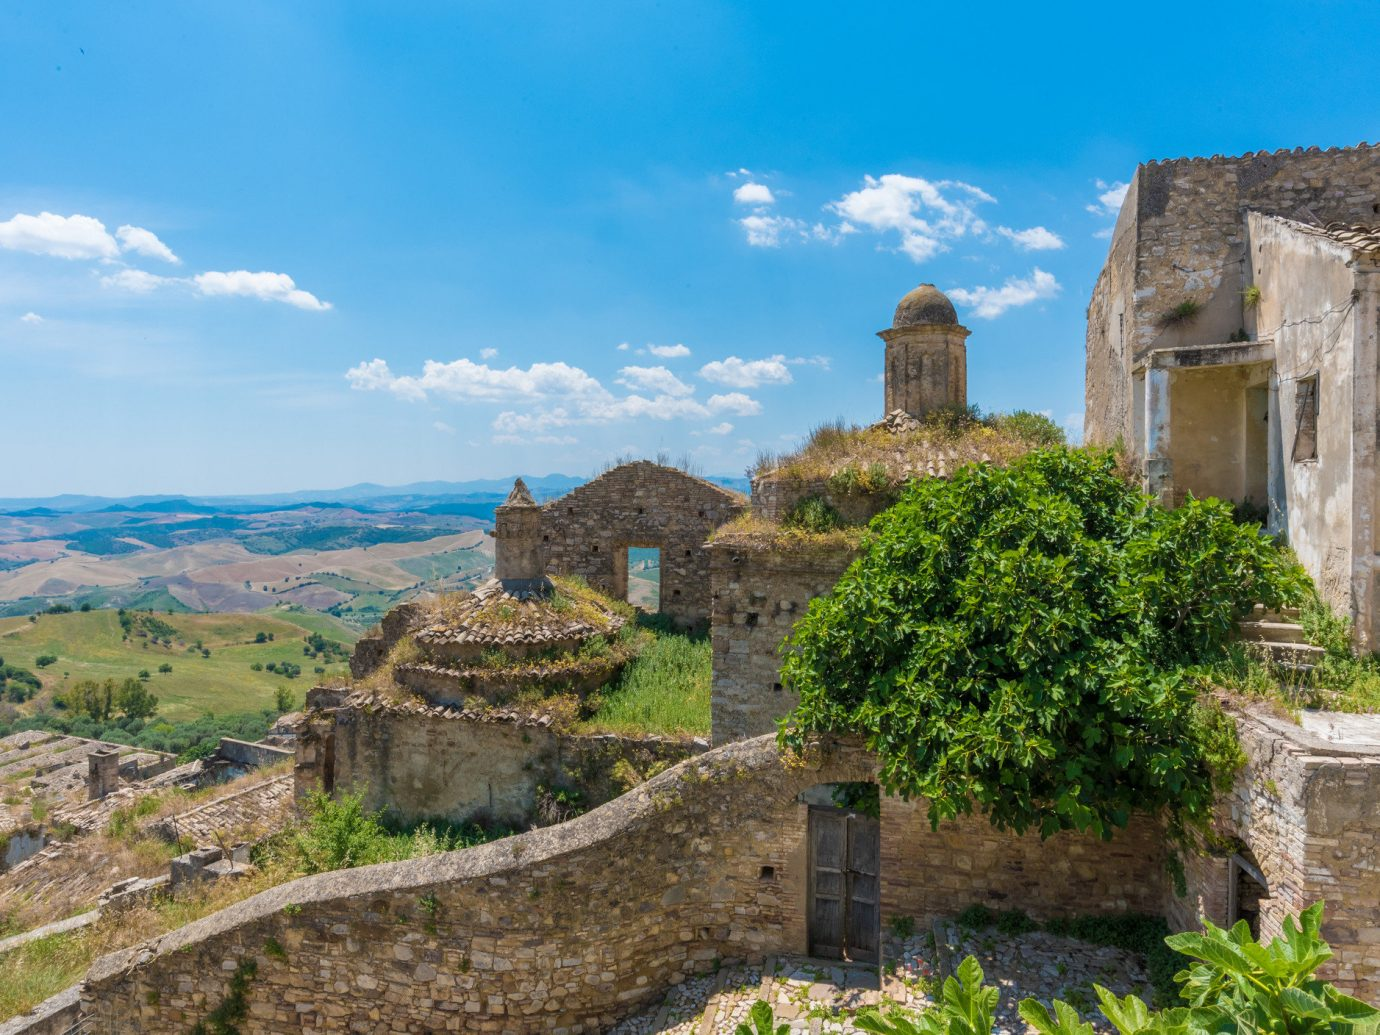 europe Italy Off-the-beaten Path Trip Ideas outdoor sky grass fortification historic site ancient history archaeological site Ruins wall stone Village history cloud tree mountain rock castle landscape middle ages tourism hillside